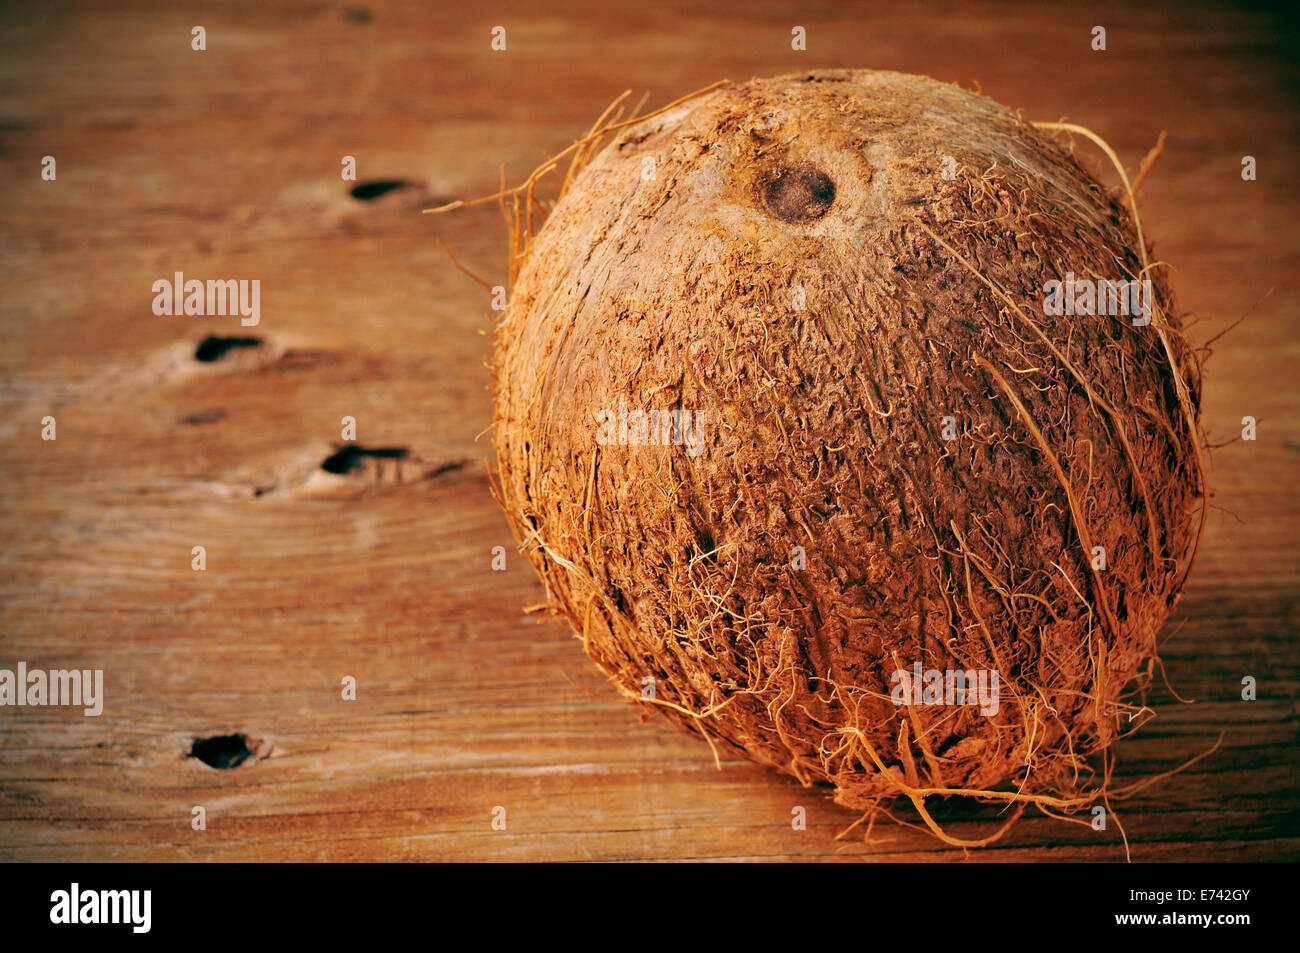 a coconut on a rustic wooden table - Stock Image